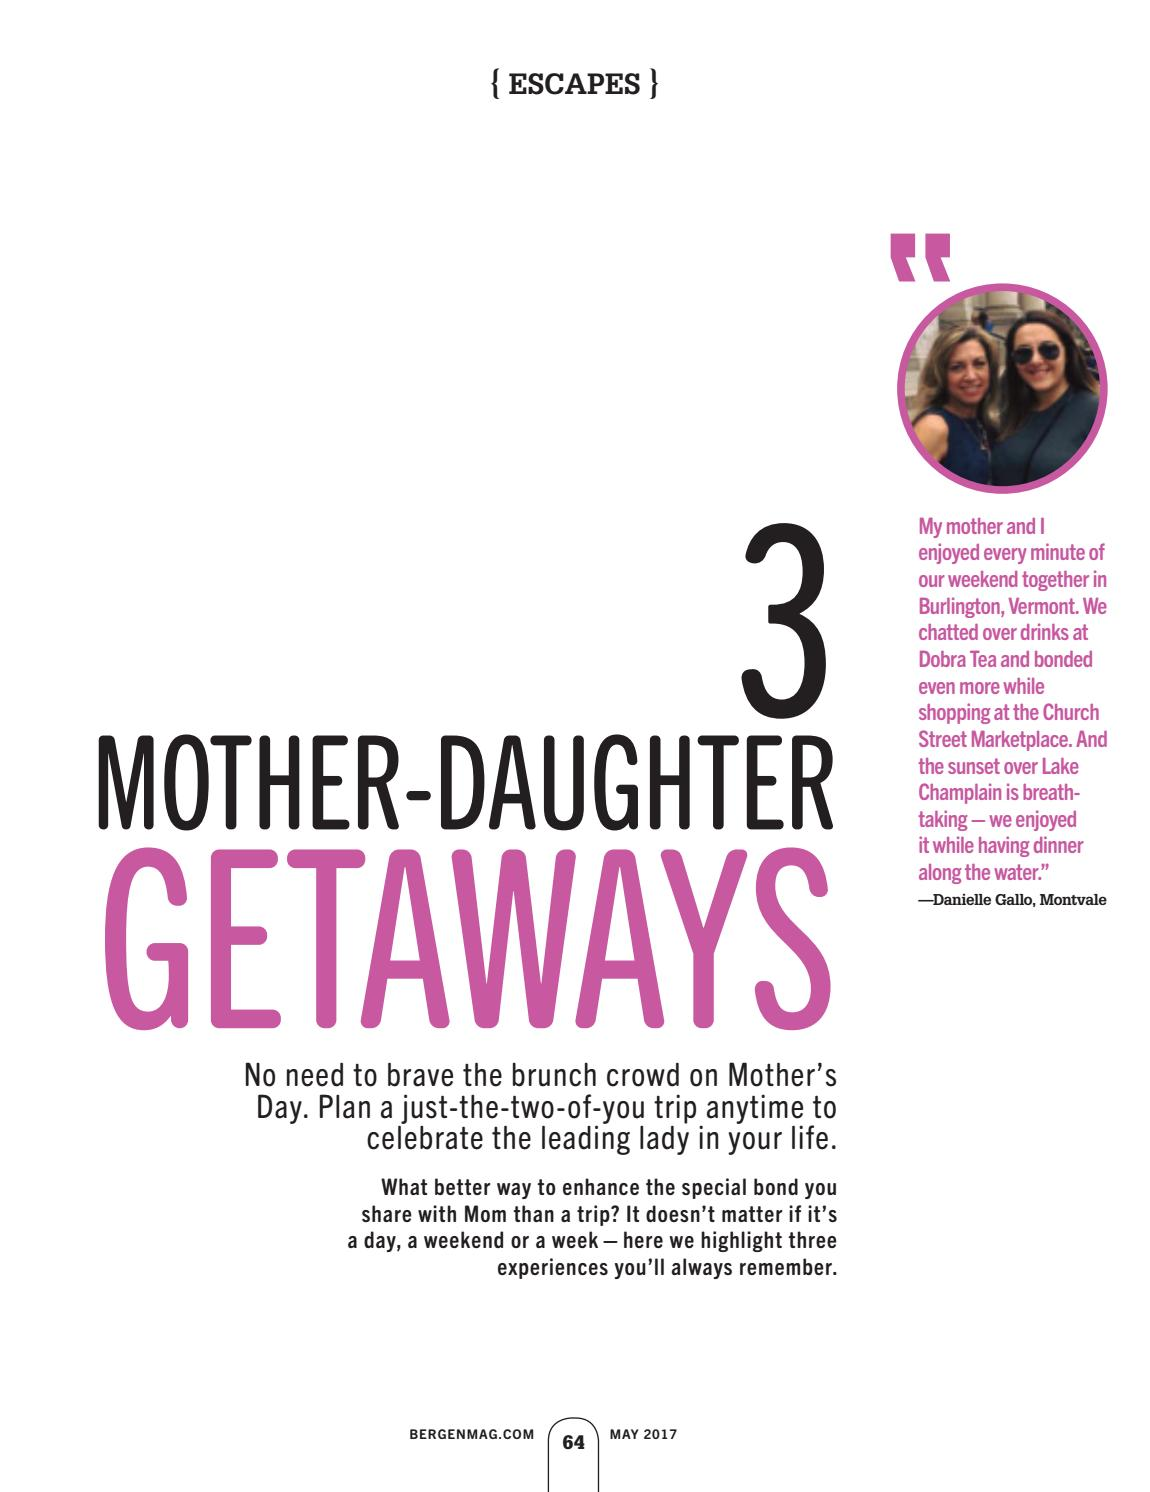 Bergen may 2017 by wainscot media issuu for Mother daughter weekend getaways